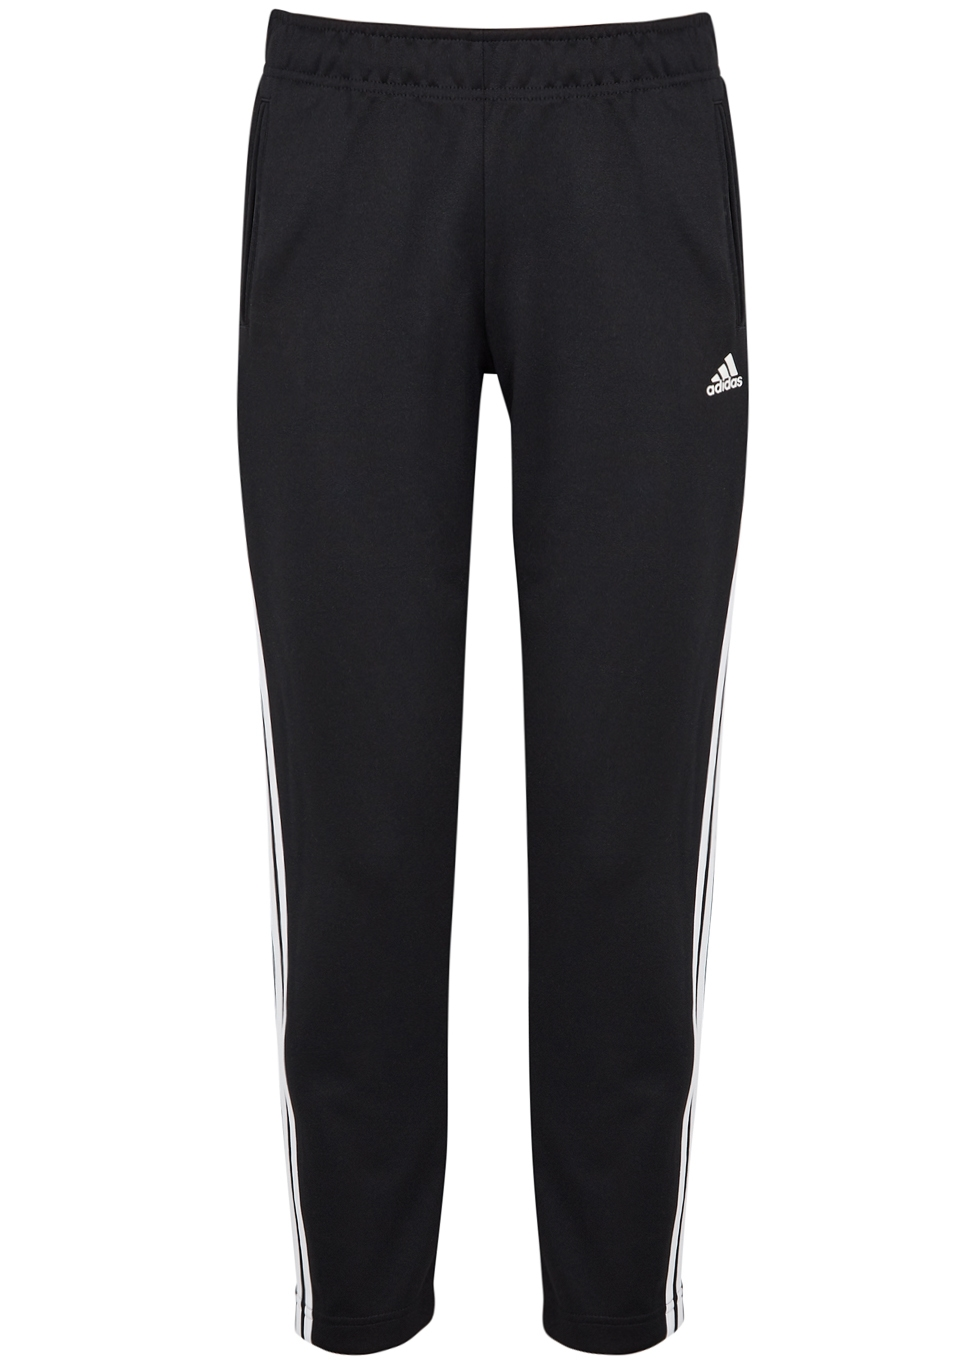 ADIDAS TRAINING Adidas Training Snap Cropped Jersey Sweatpants in Black And White